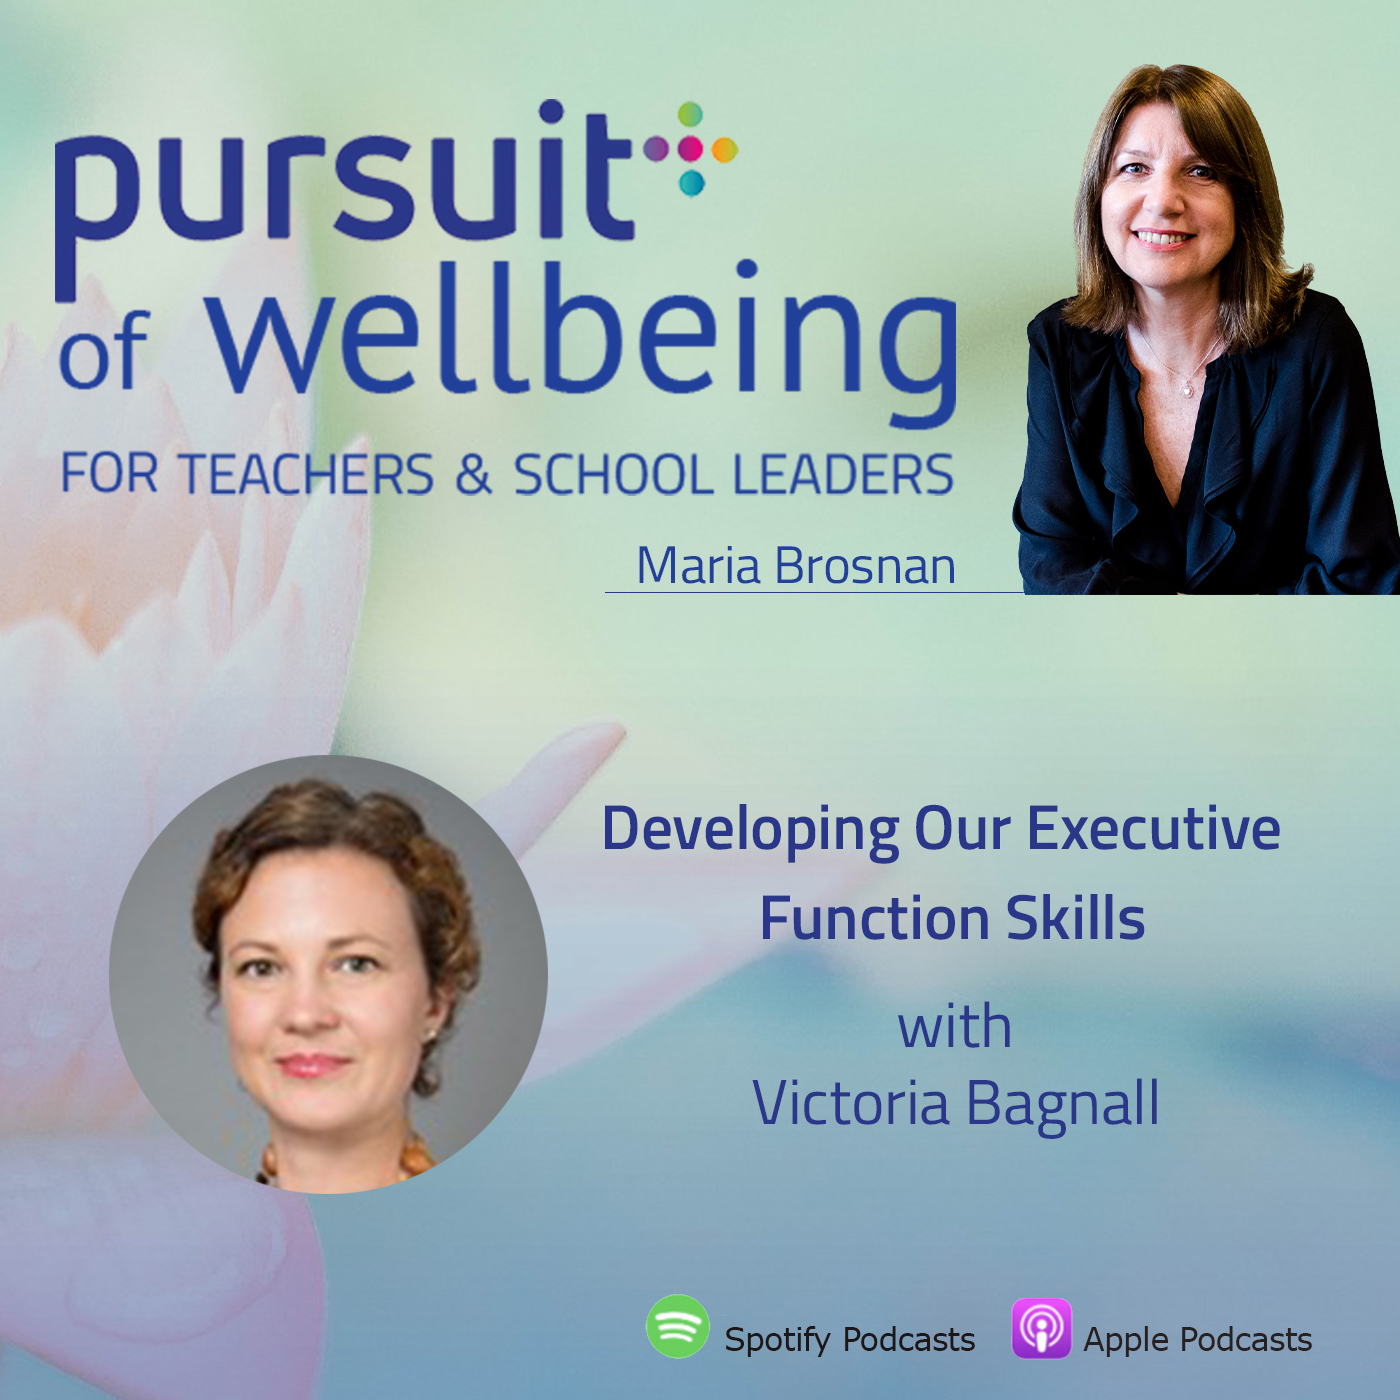 Developing Our Executive Function Skills with Victoria Bagnall